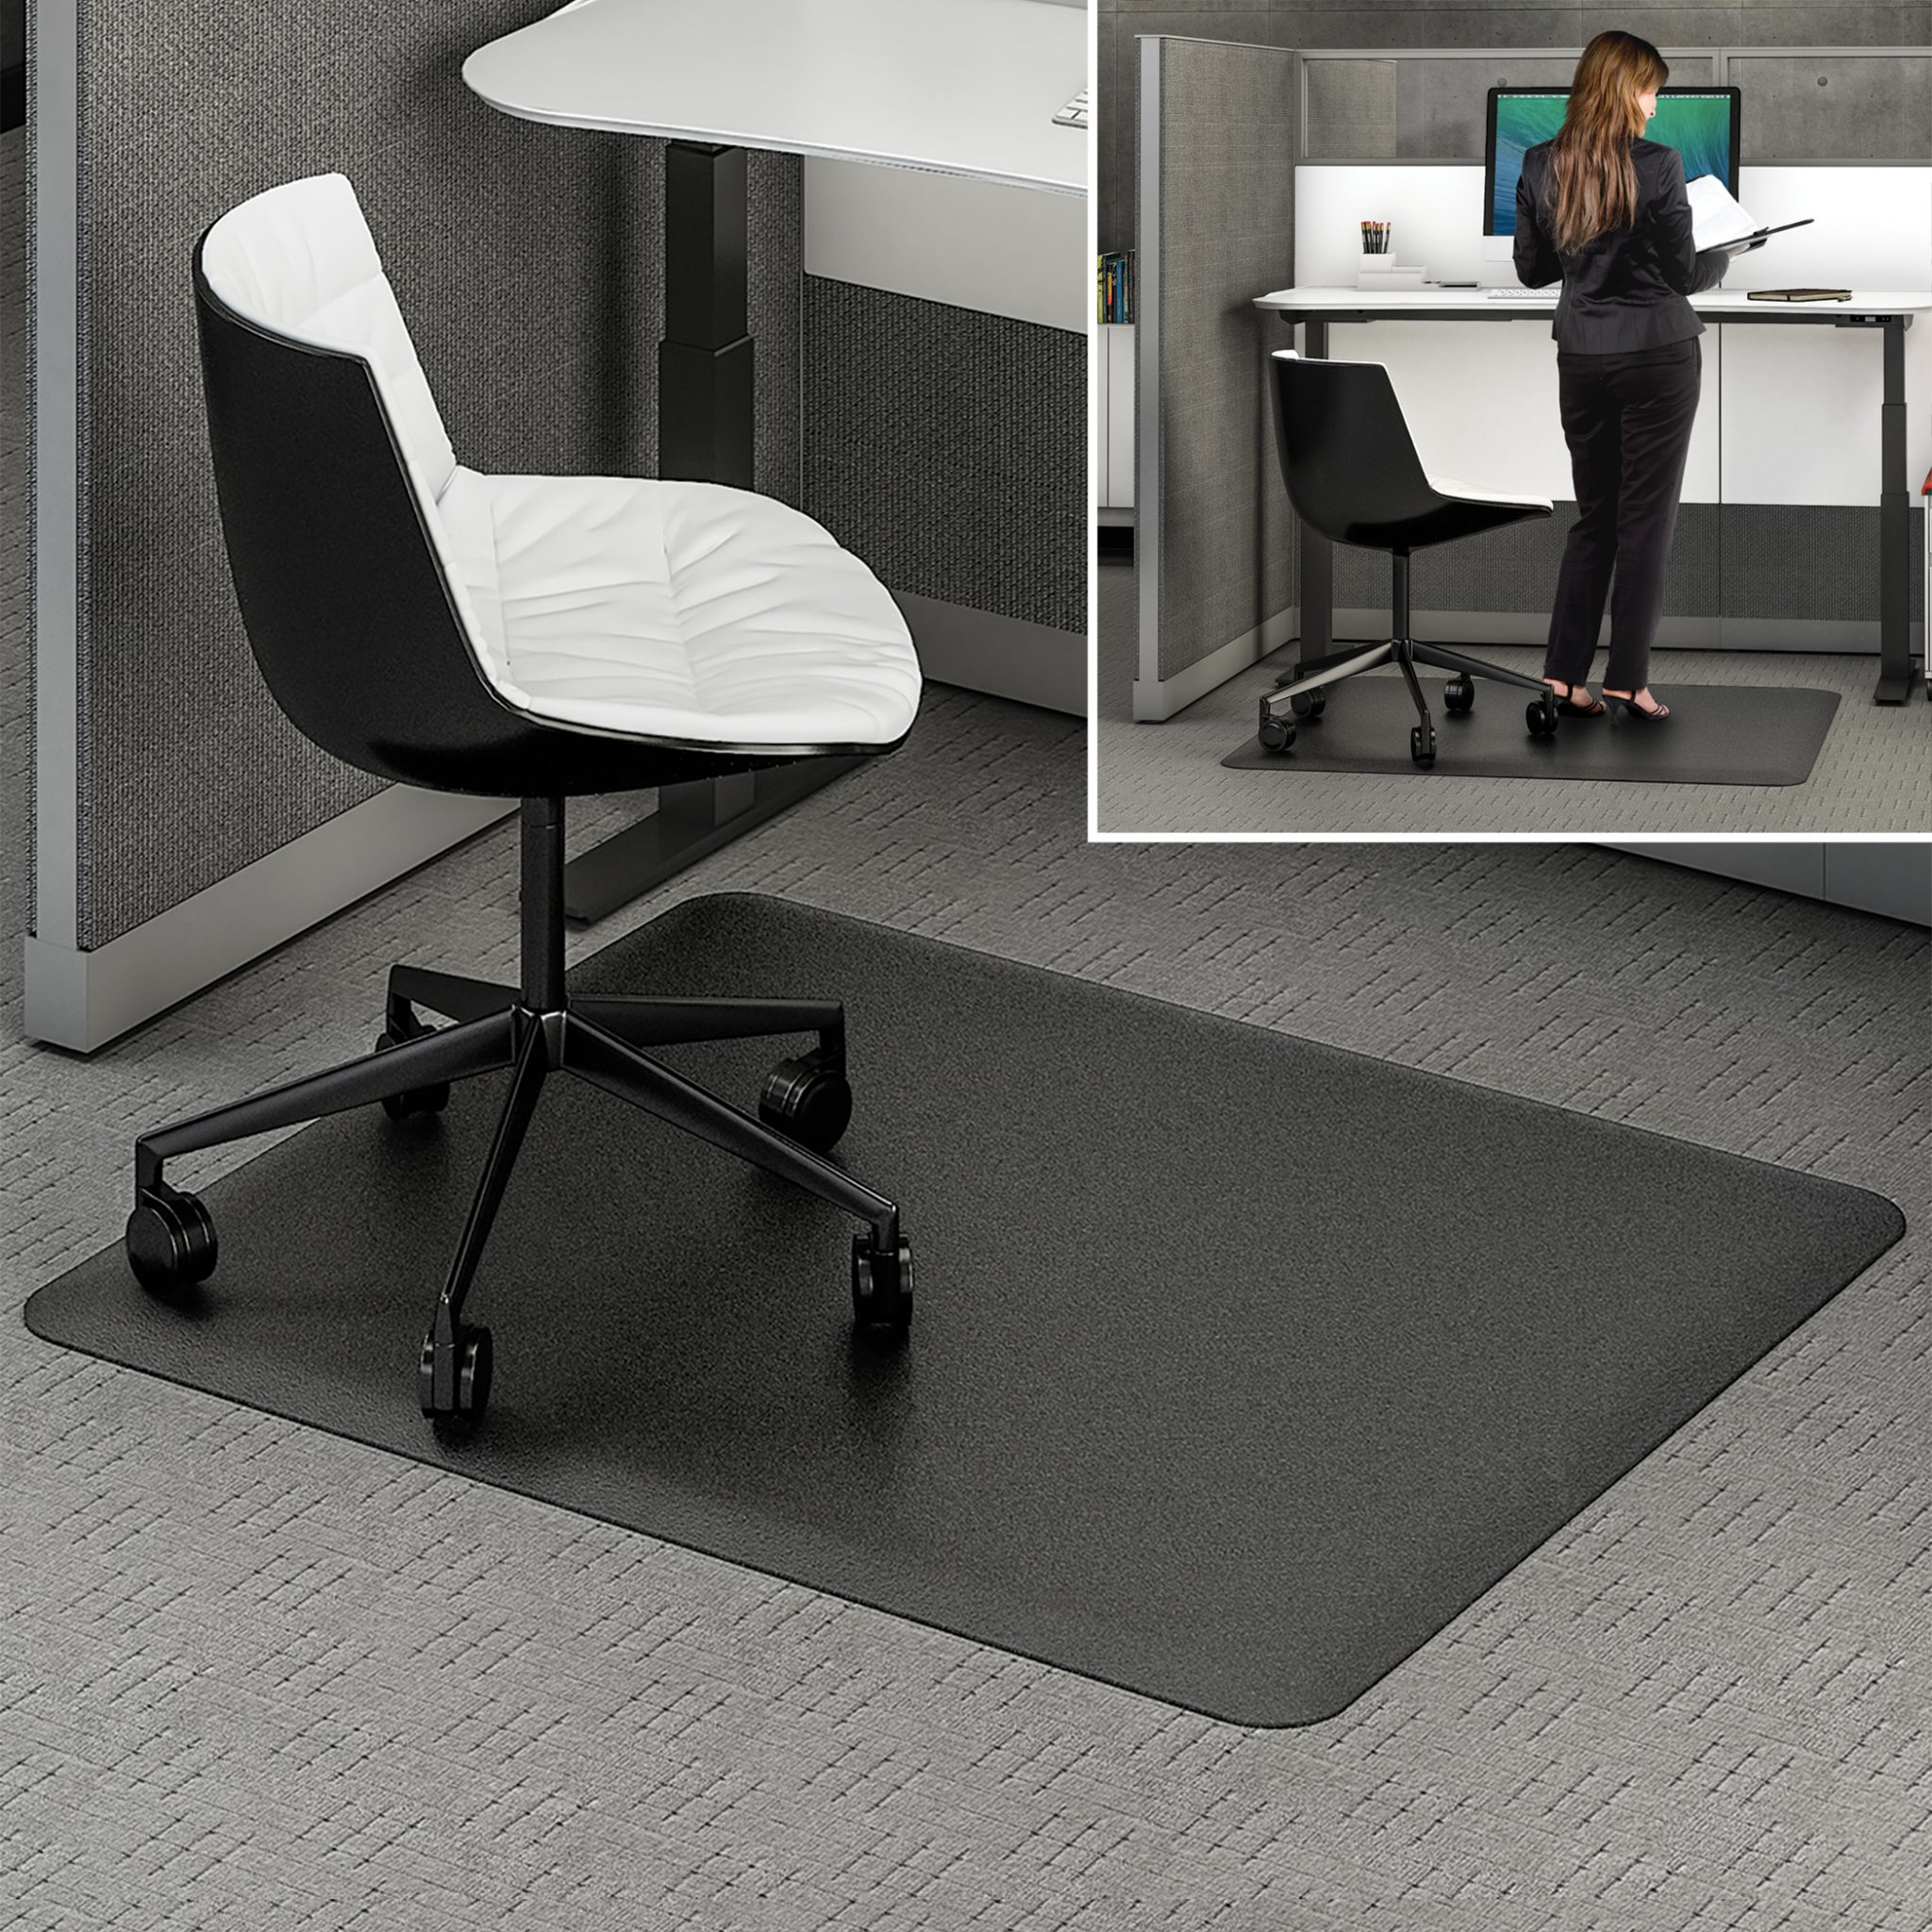 office chair mat 45 x 60 chippendale style chairs ergonomic sit stand | chair-mats.com